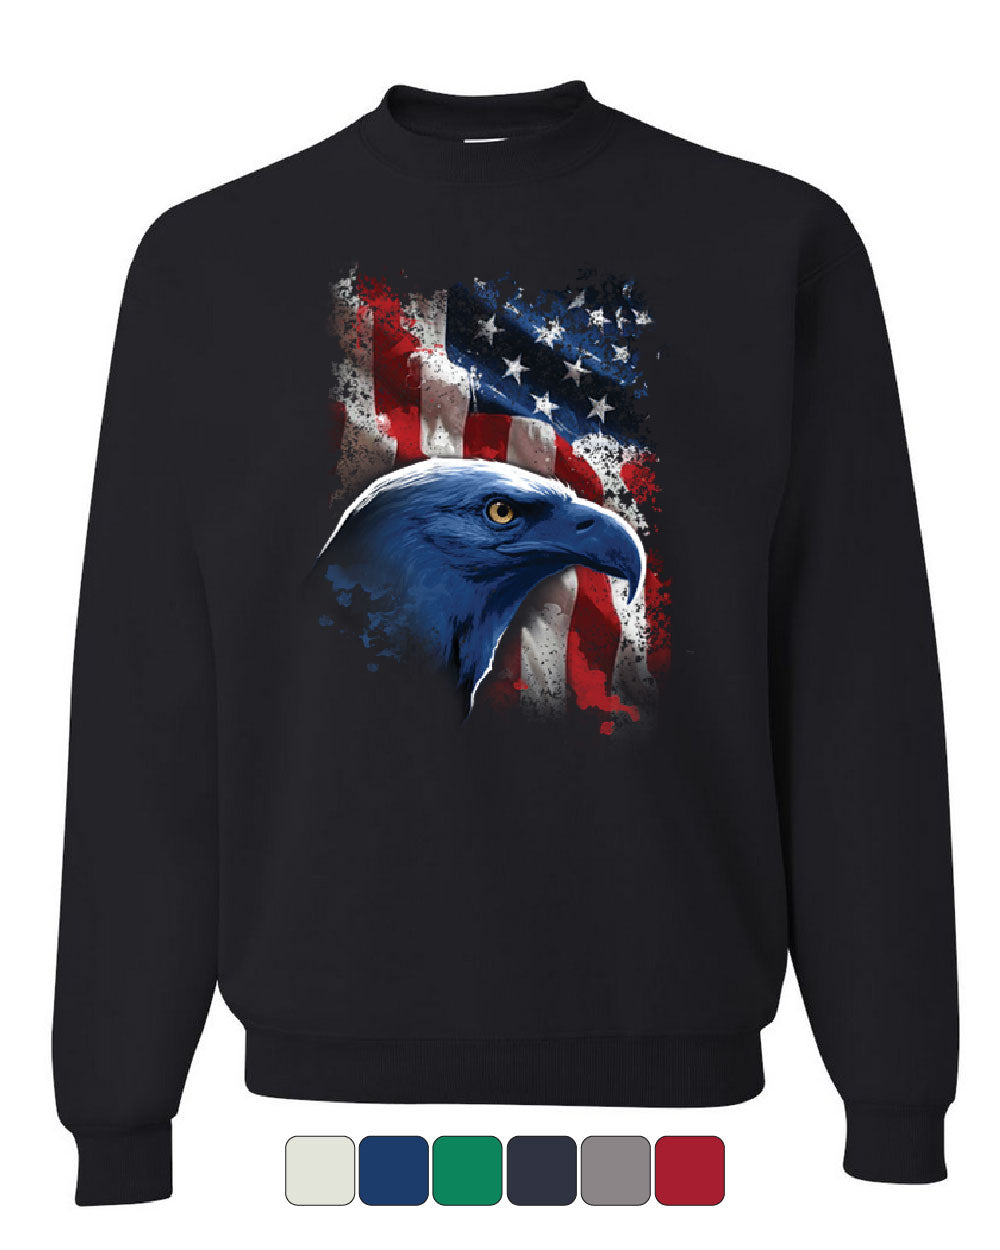 Land of the Free Women/'s Long Sleeve Tee 4th of July Bald Eagle American Flag